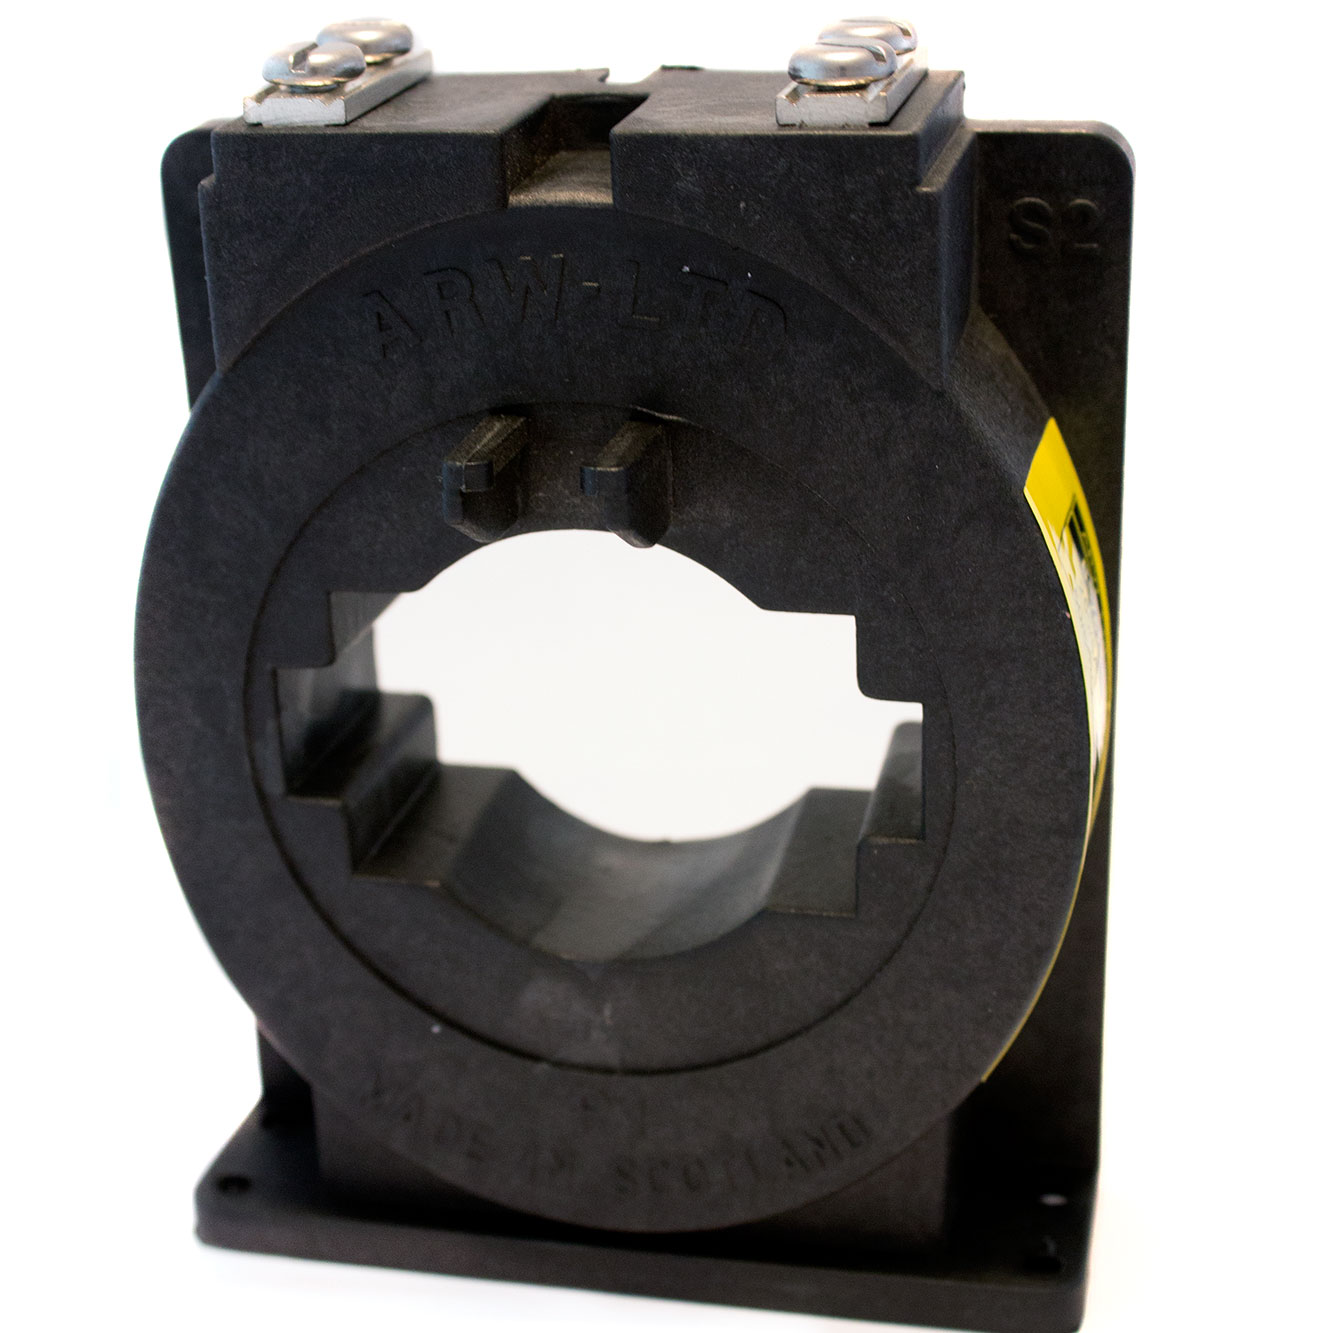 E64 Cased Current Transformer